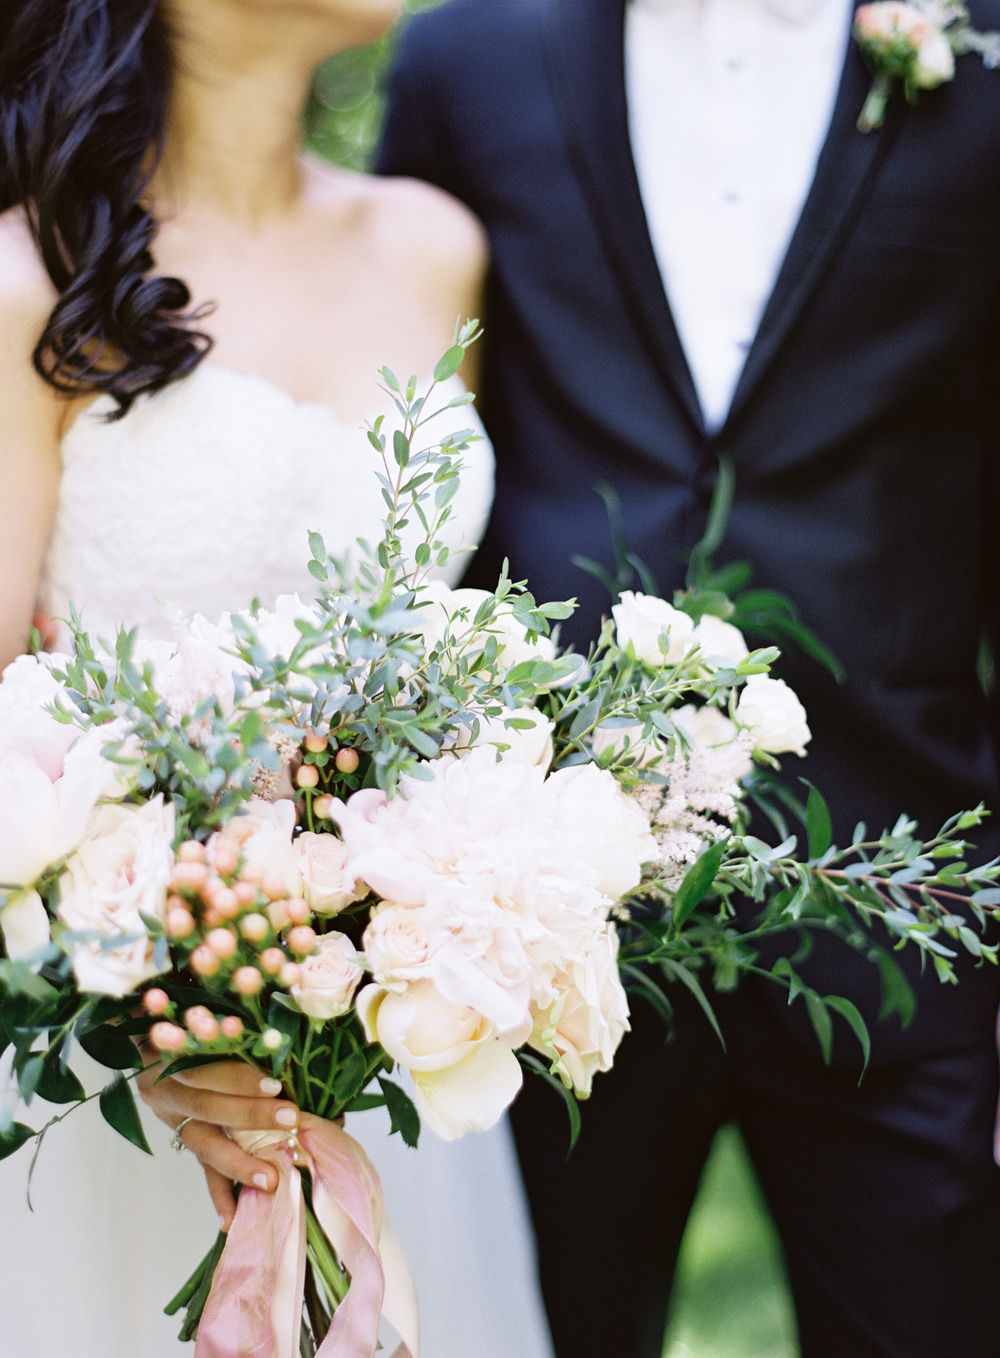 RomanticGardenWedding_WhiskersandWillow_040.jpg